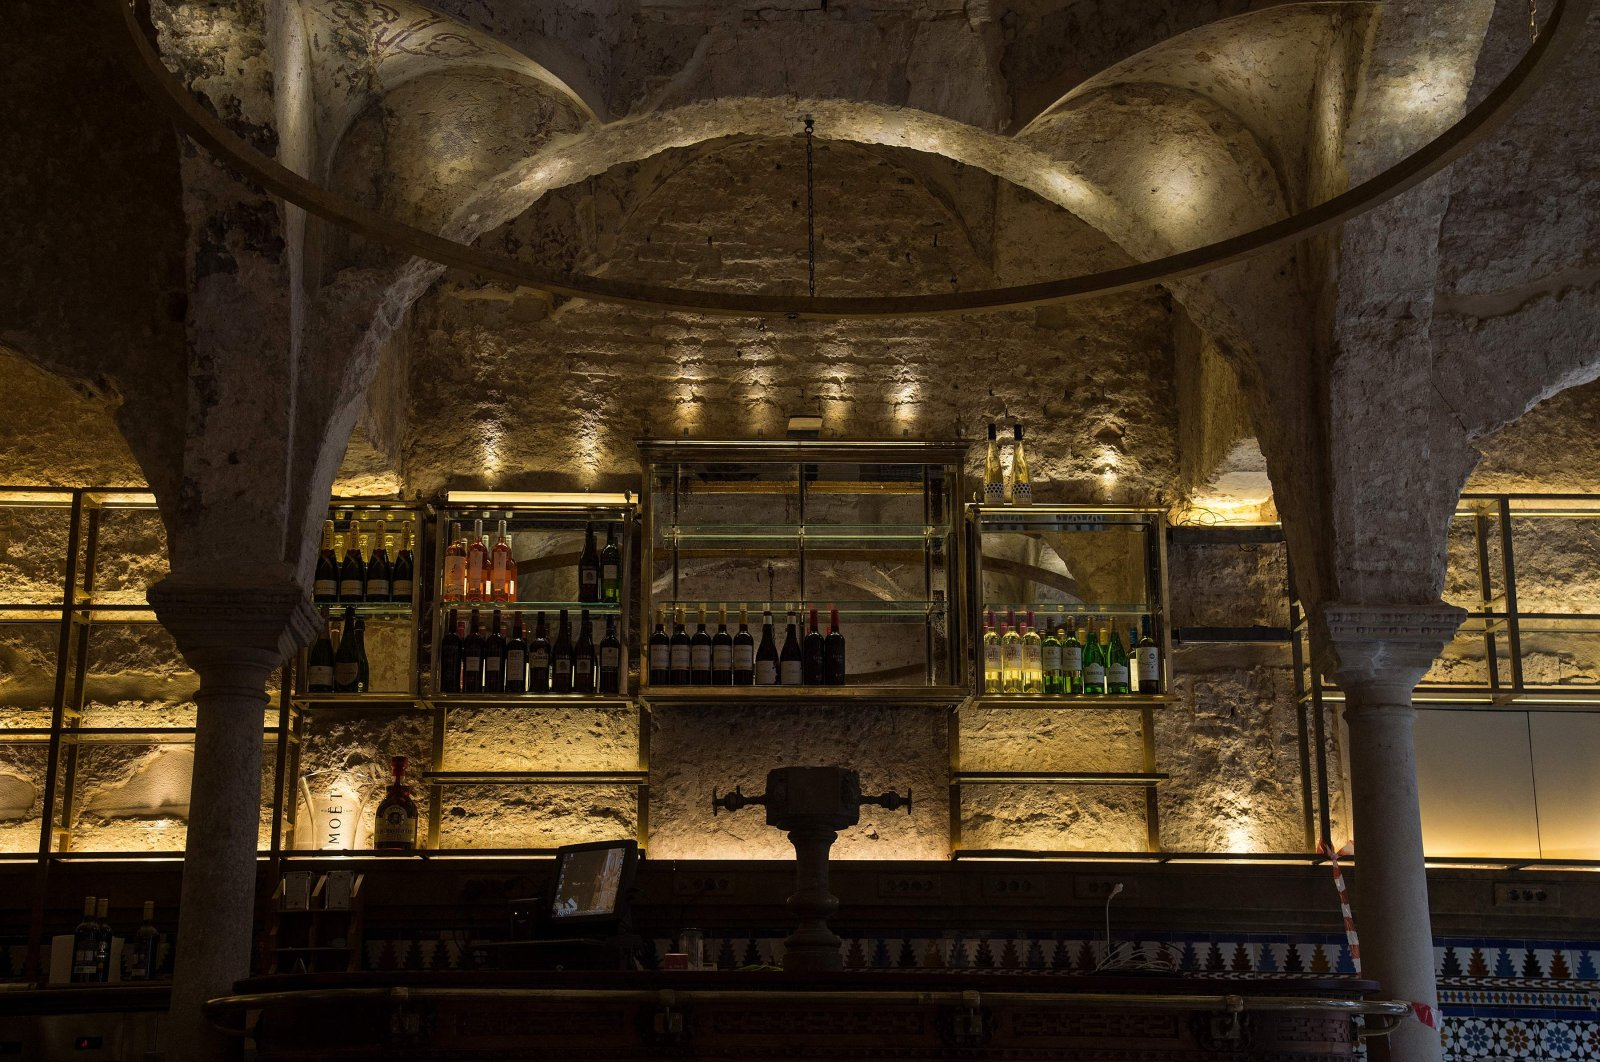 The counter of the Giralda Bar and the Islamic architecture can be seen in the photo, Seville, Spain, Feb. 22, 2021. (AFP Photo)